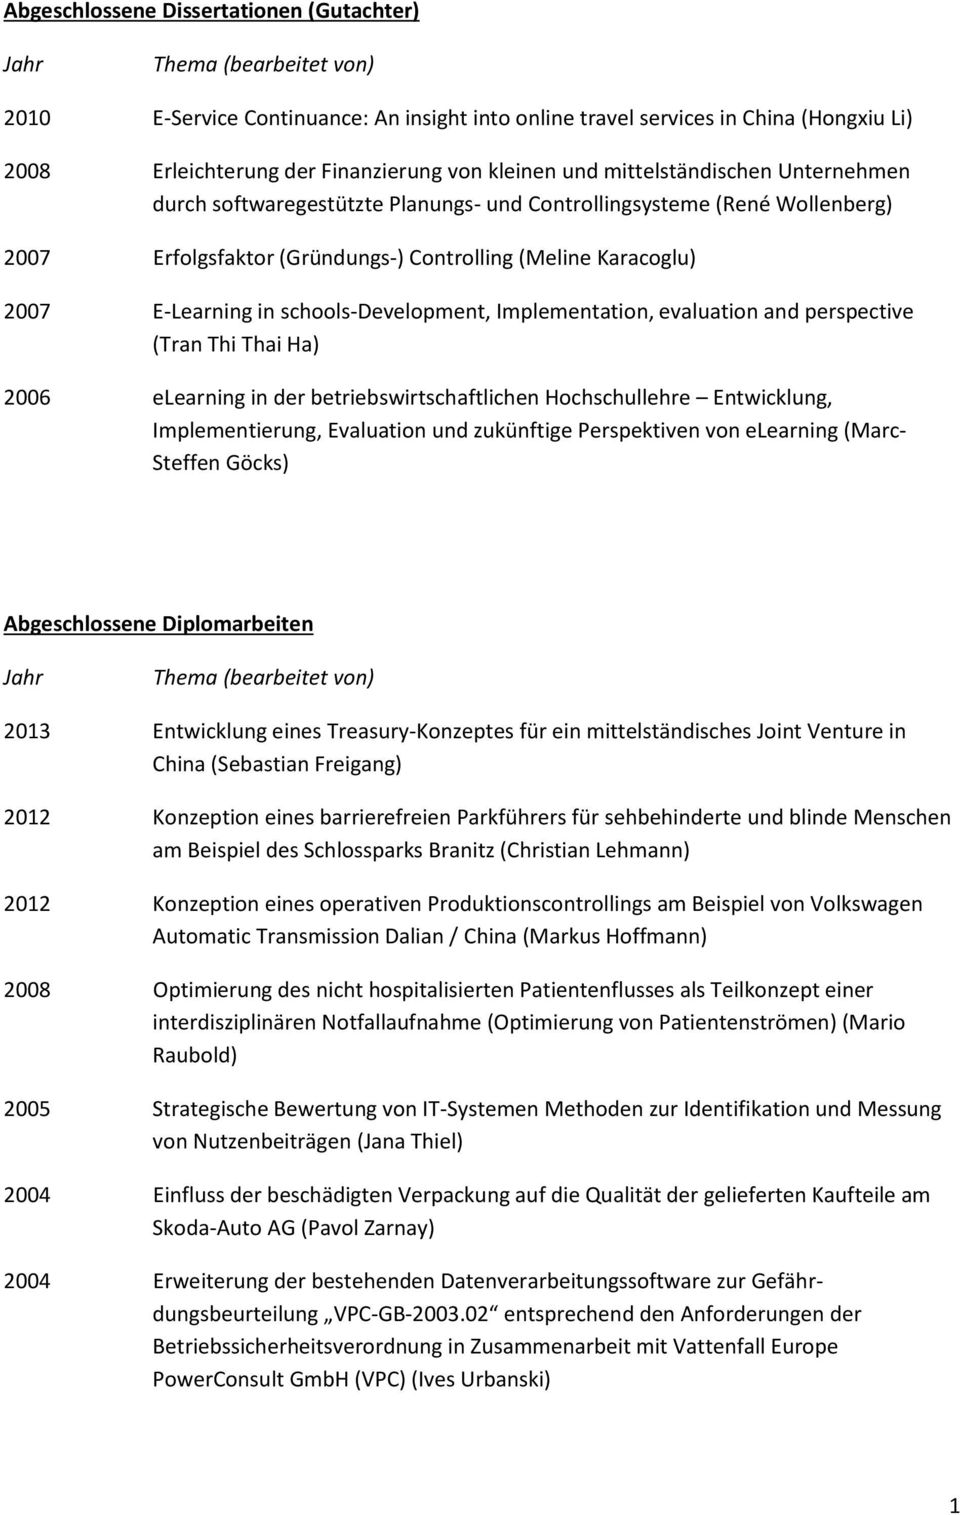 schools-development, Implementation, evaluation and perspective (Tran Thi Thai Ha) 2006 elearning in der betriebswirtschaftlichen Hochschullehre Entwicklung, Implementierung, Evaluation und